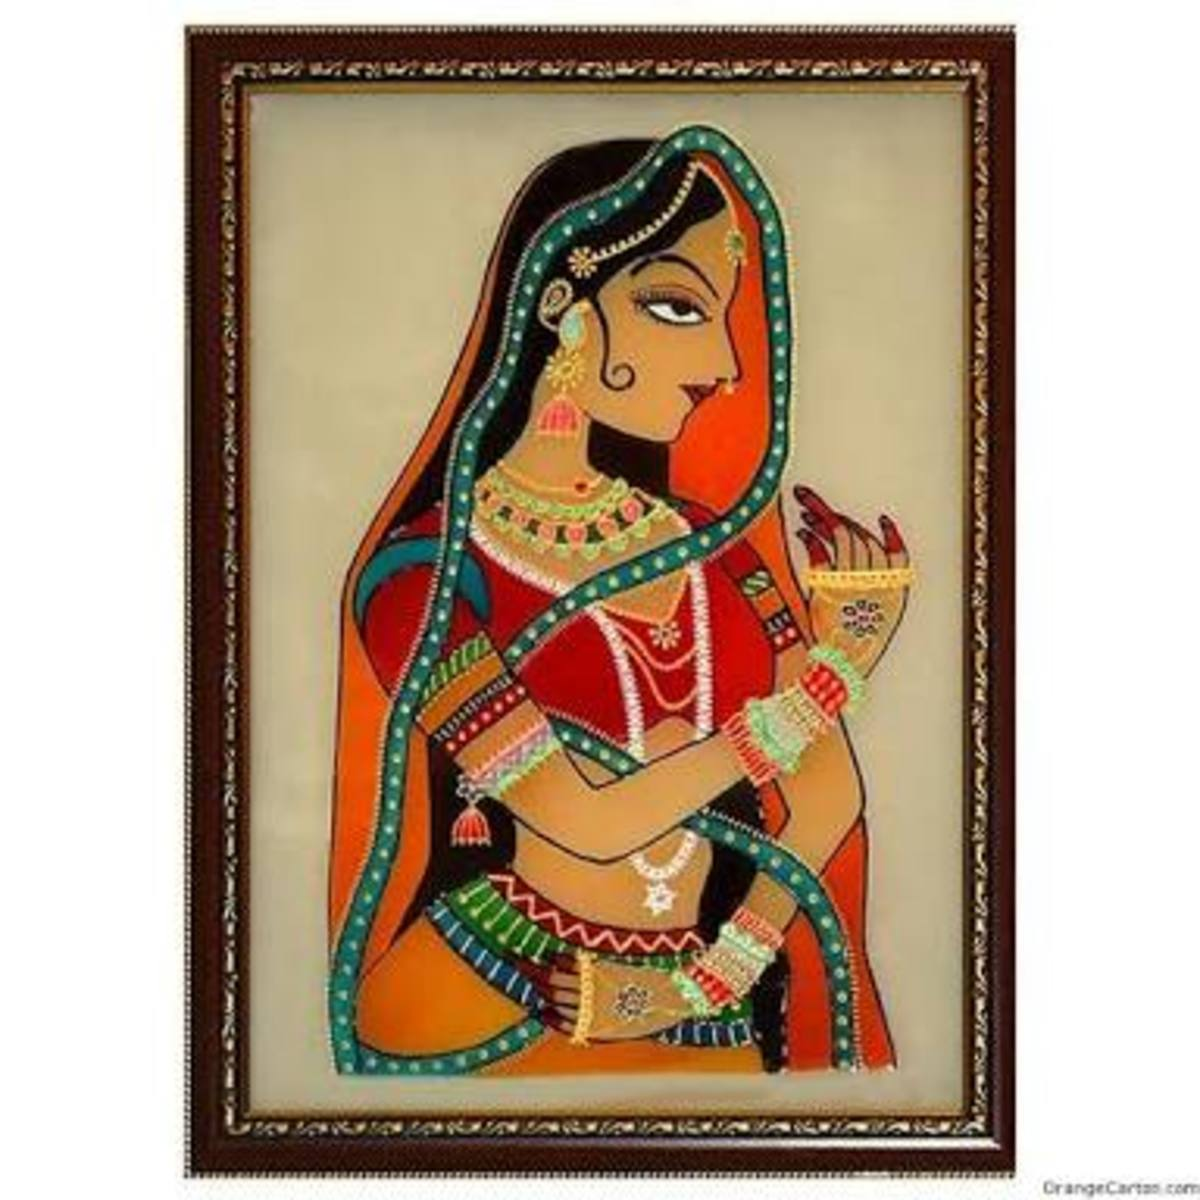 Madhubani painting showing a princess